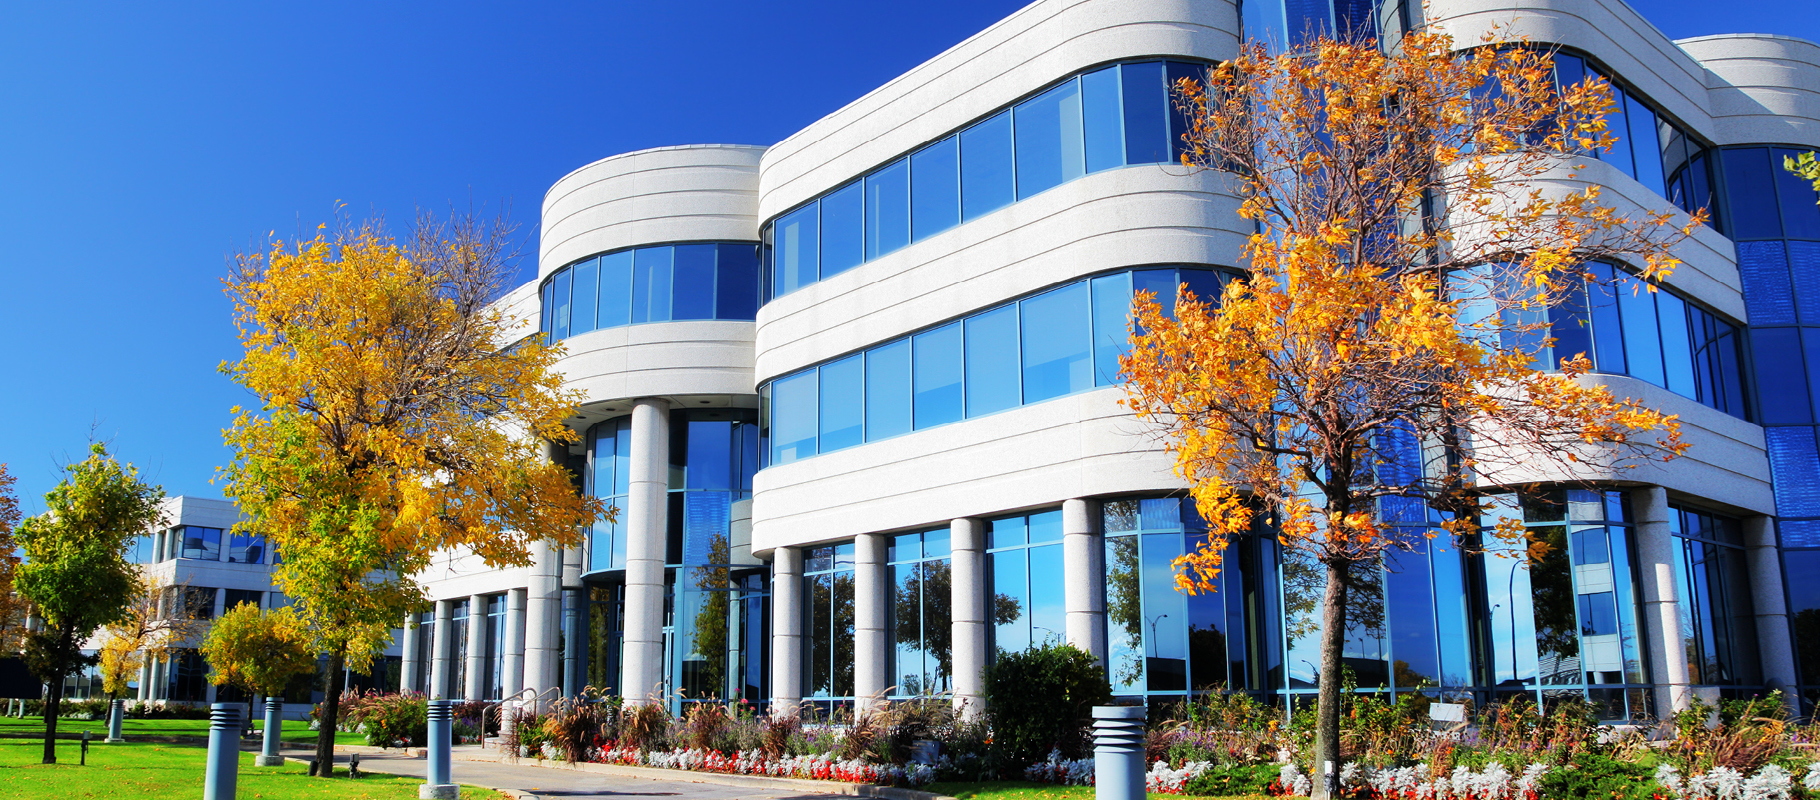 Medical Office Building Article, Four Reasons to Consider Medical Office Buildings